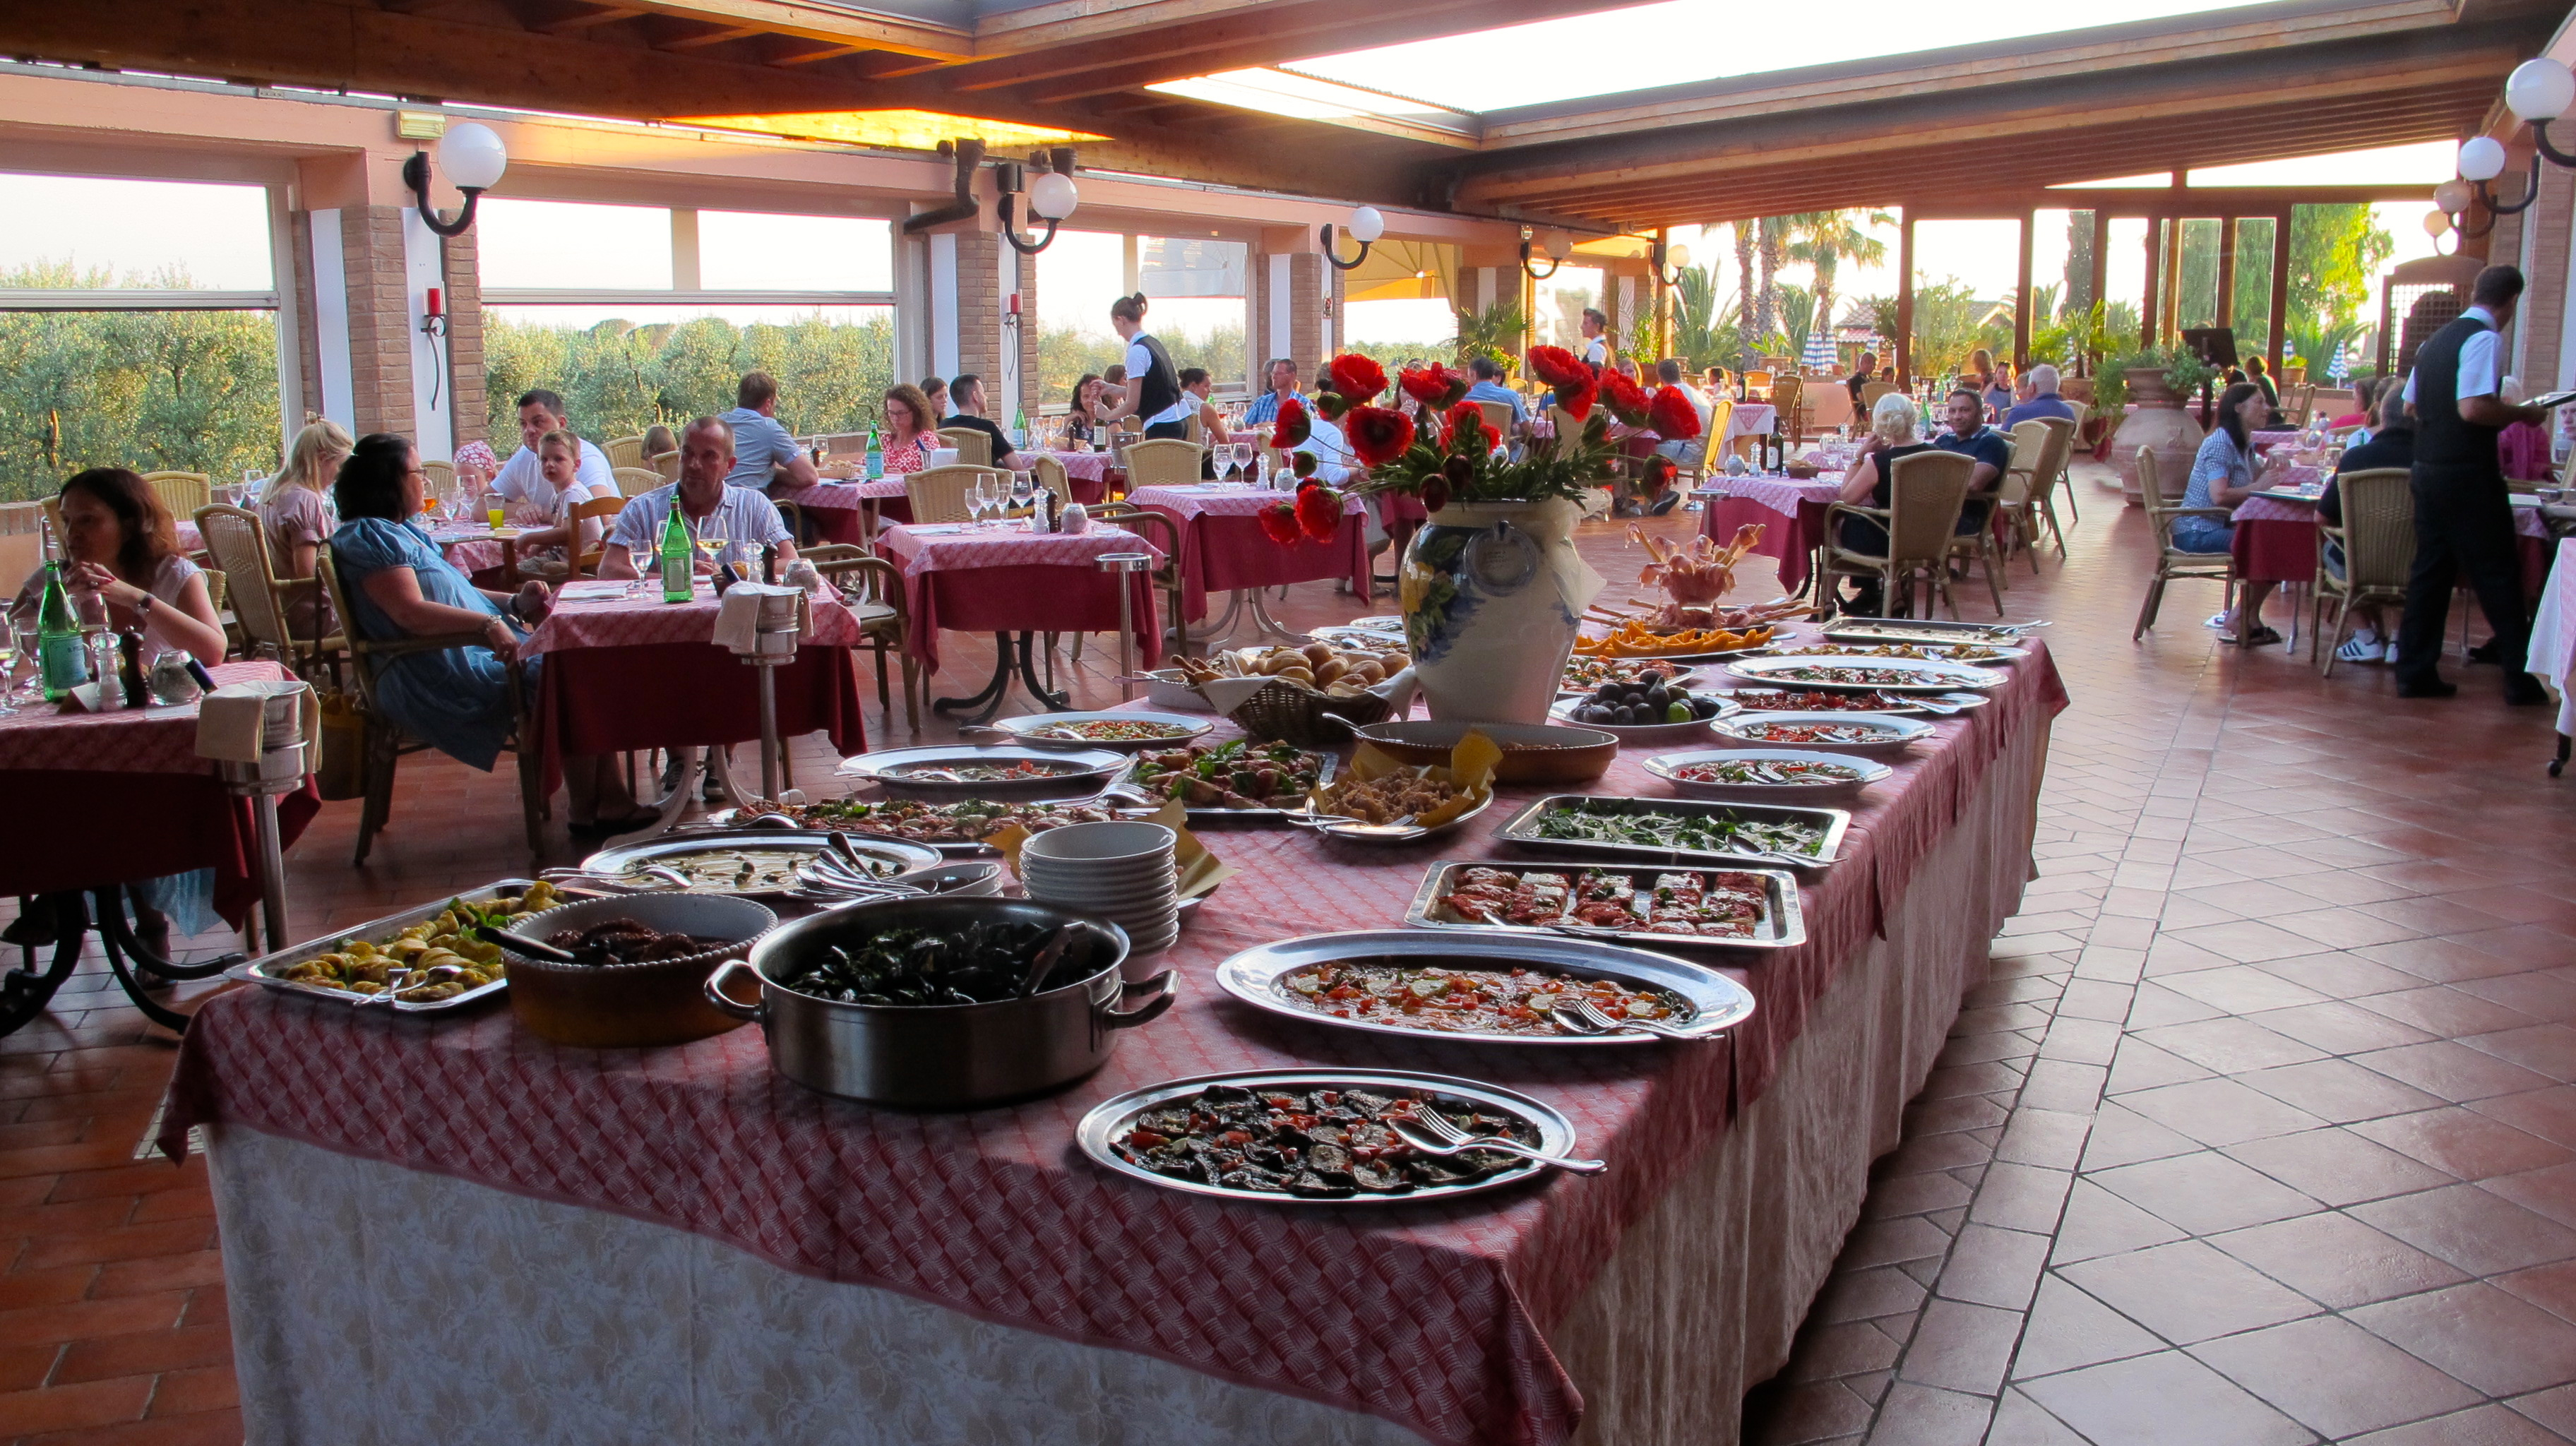 The magical  buffet of antipasti displayed each night at the Agrihotel.